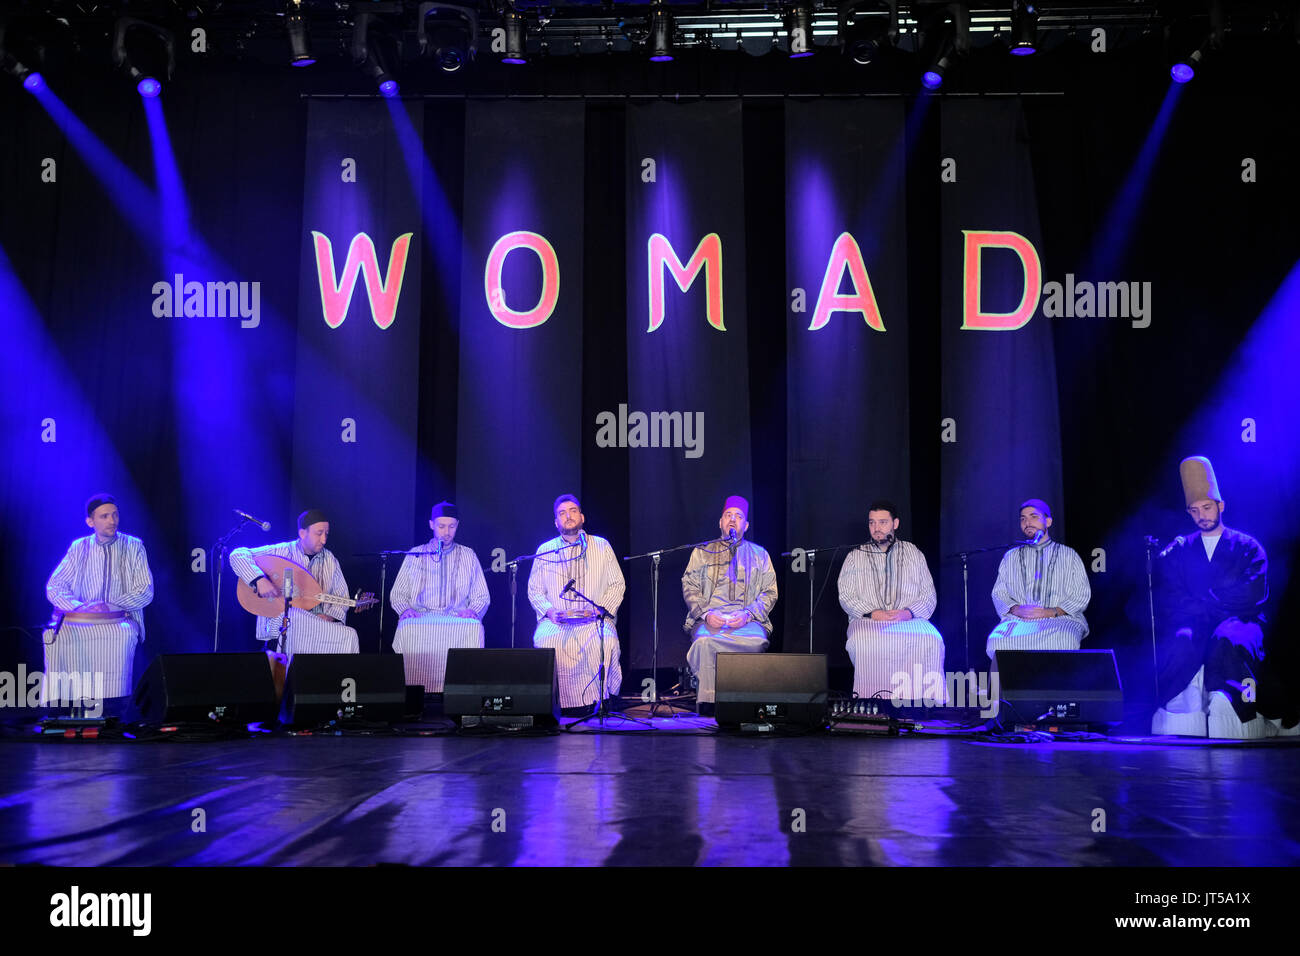 Noureddine Kourchid and the Whirling Dervishes of Damascus performing at the WOMAD Festival, Charlton Park, Malmesbury, Wiltshire, England, July 30, 2 - Stock Image